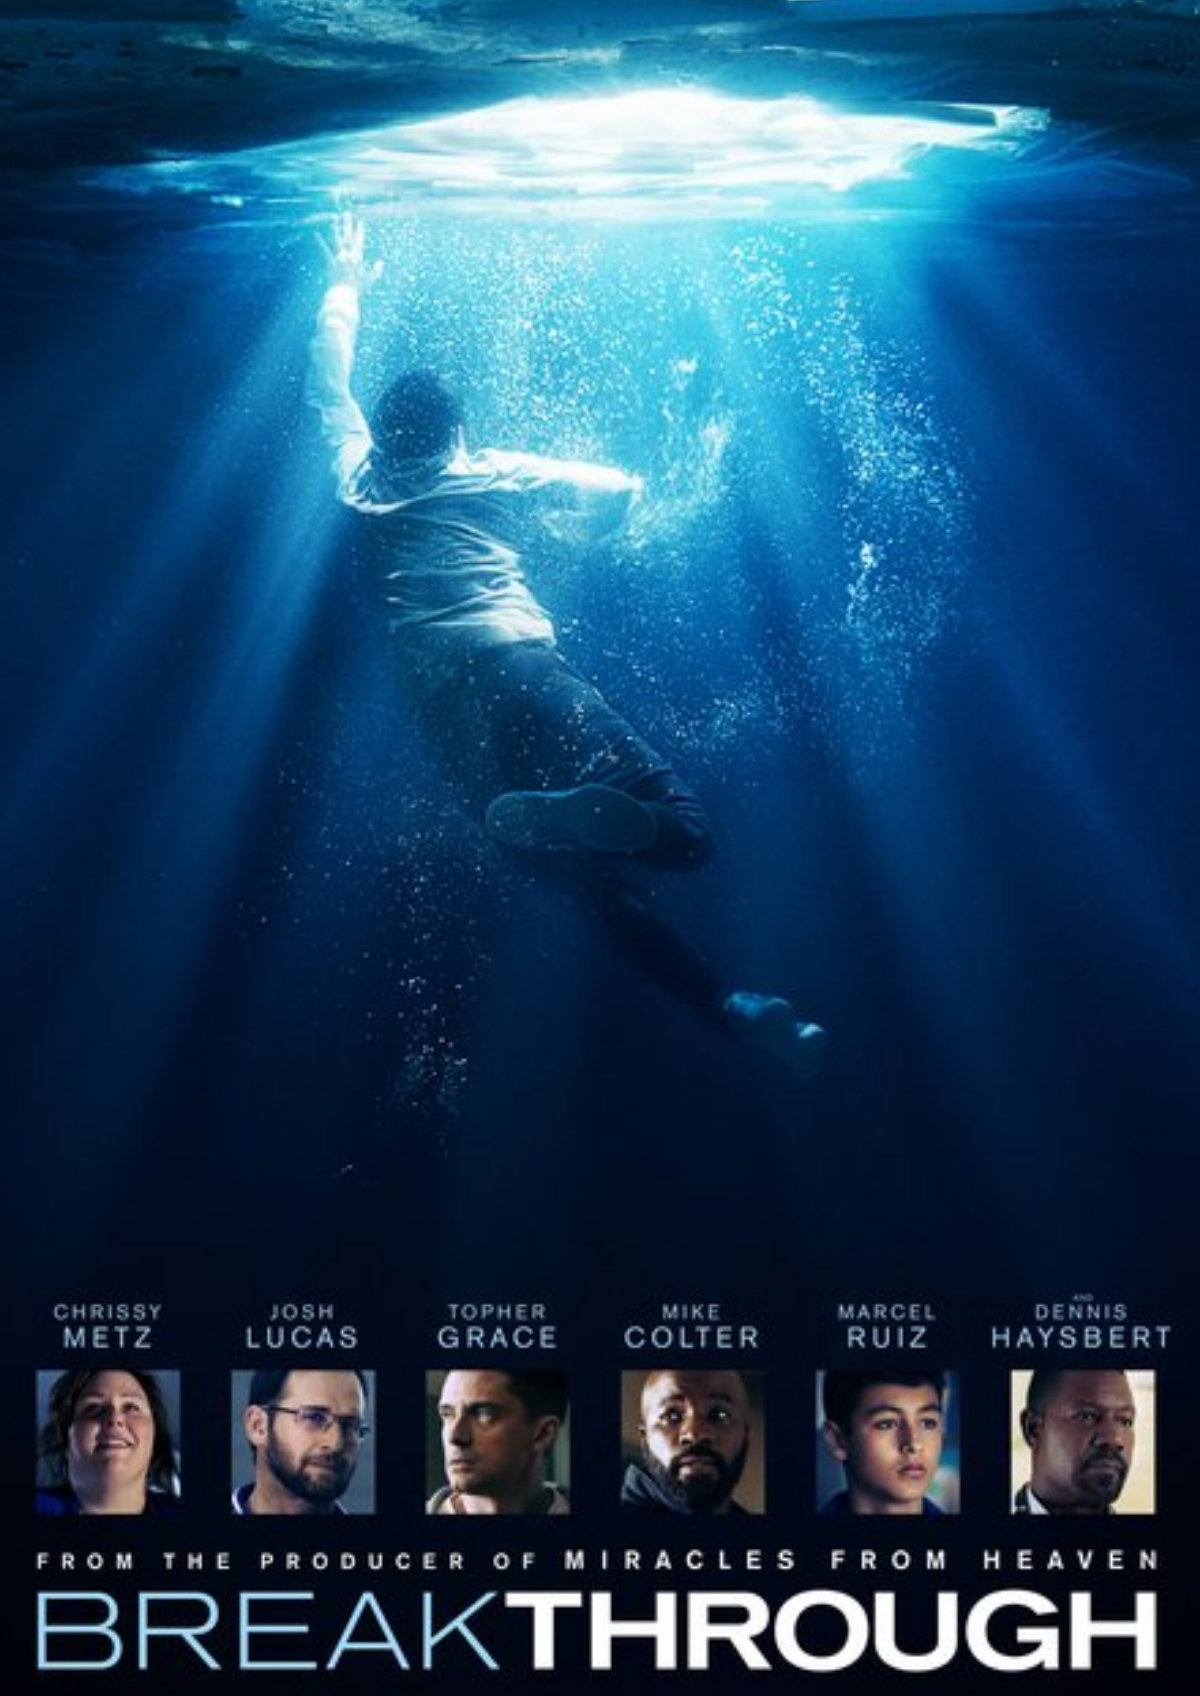 'Breakthrough' movie poster